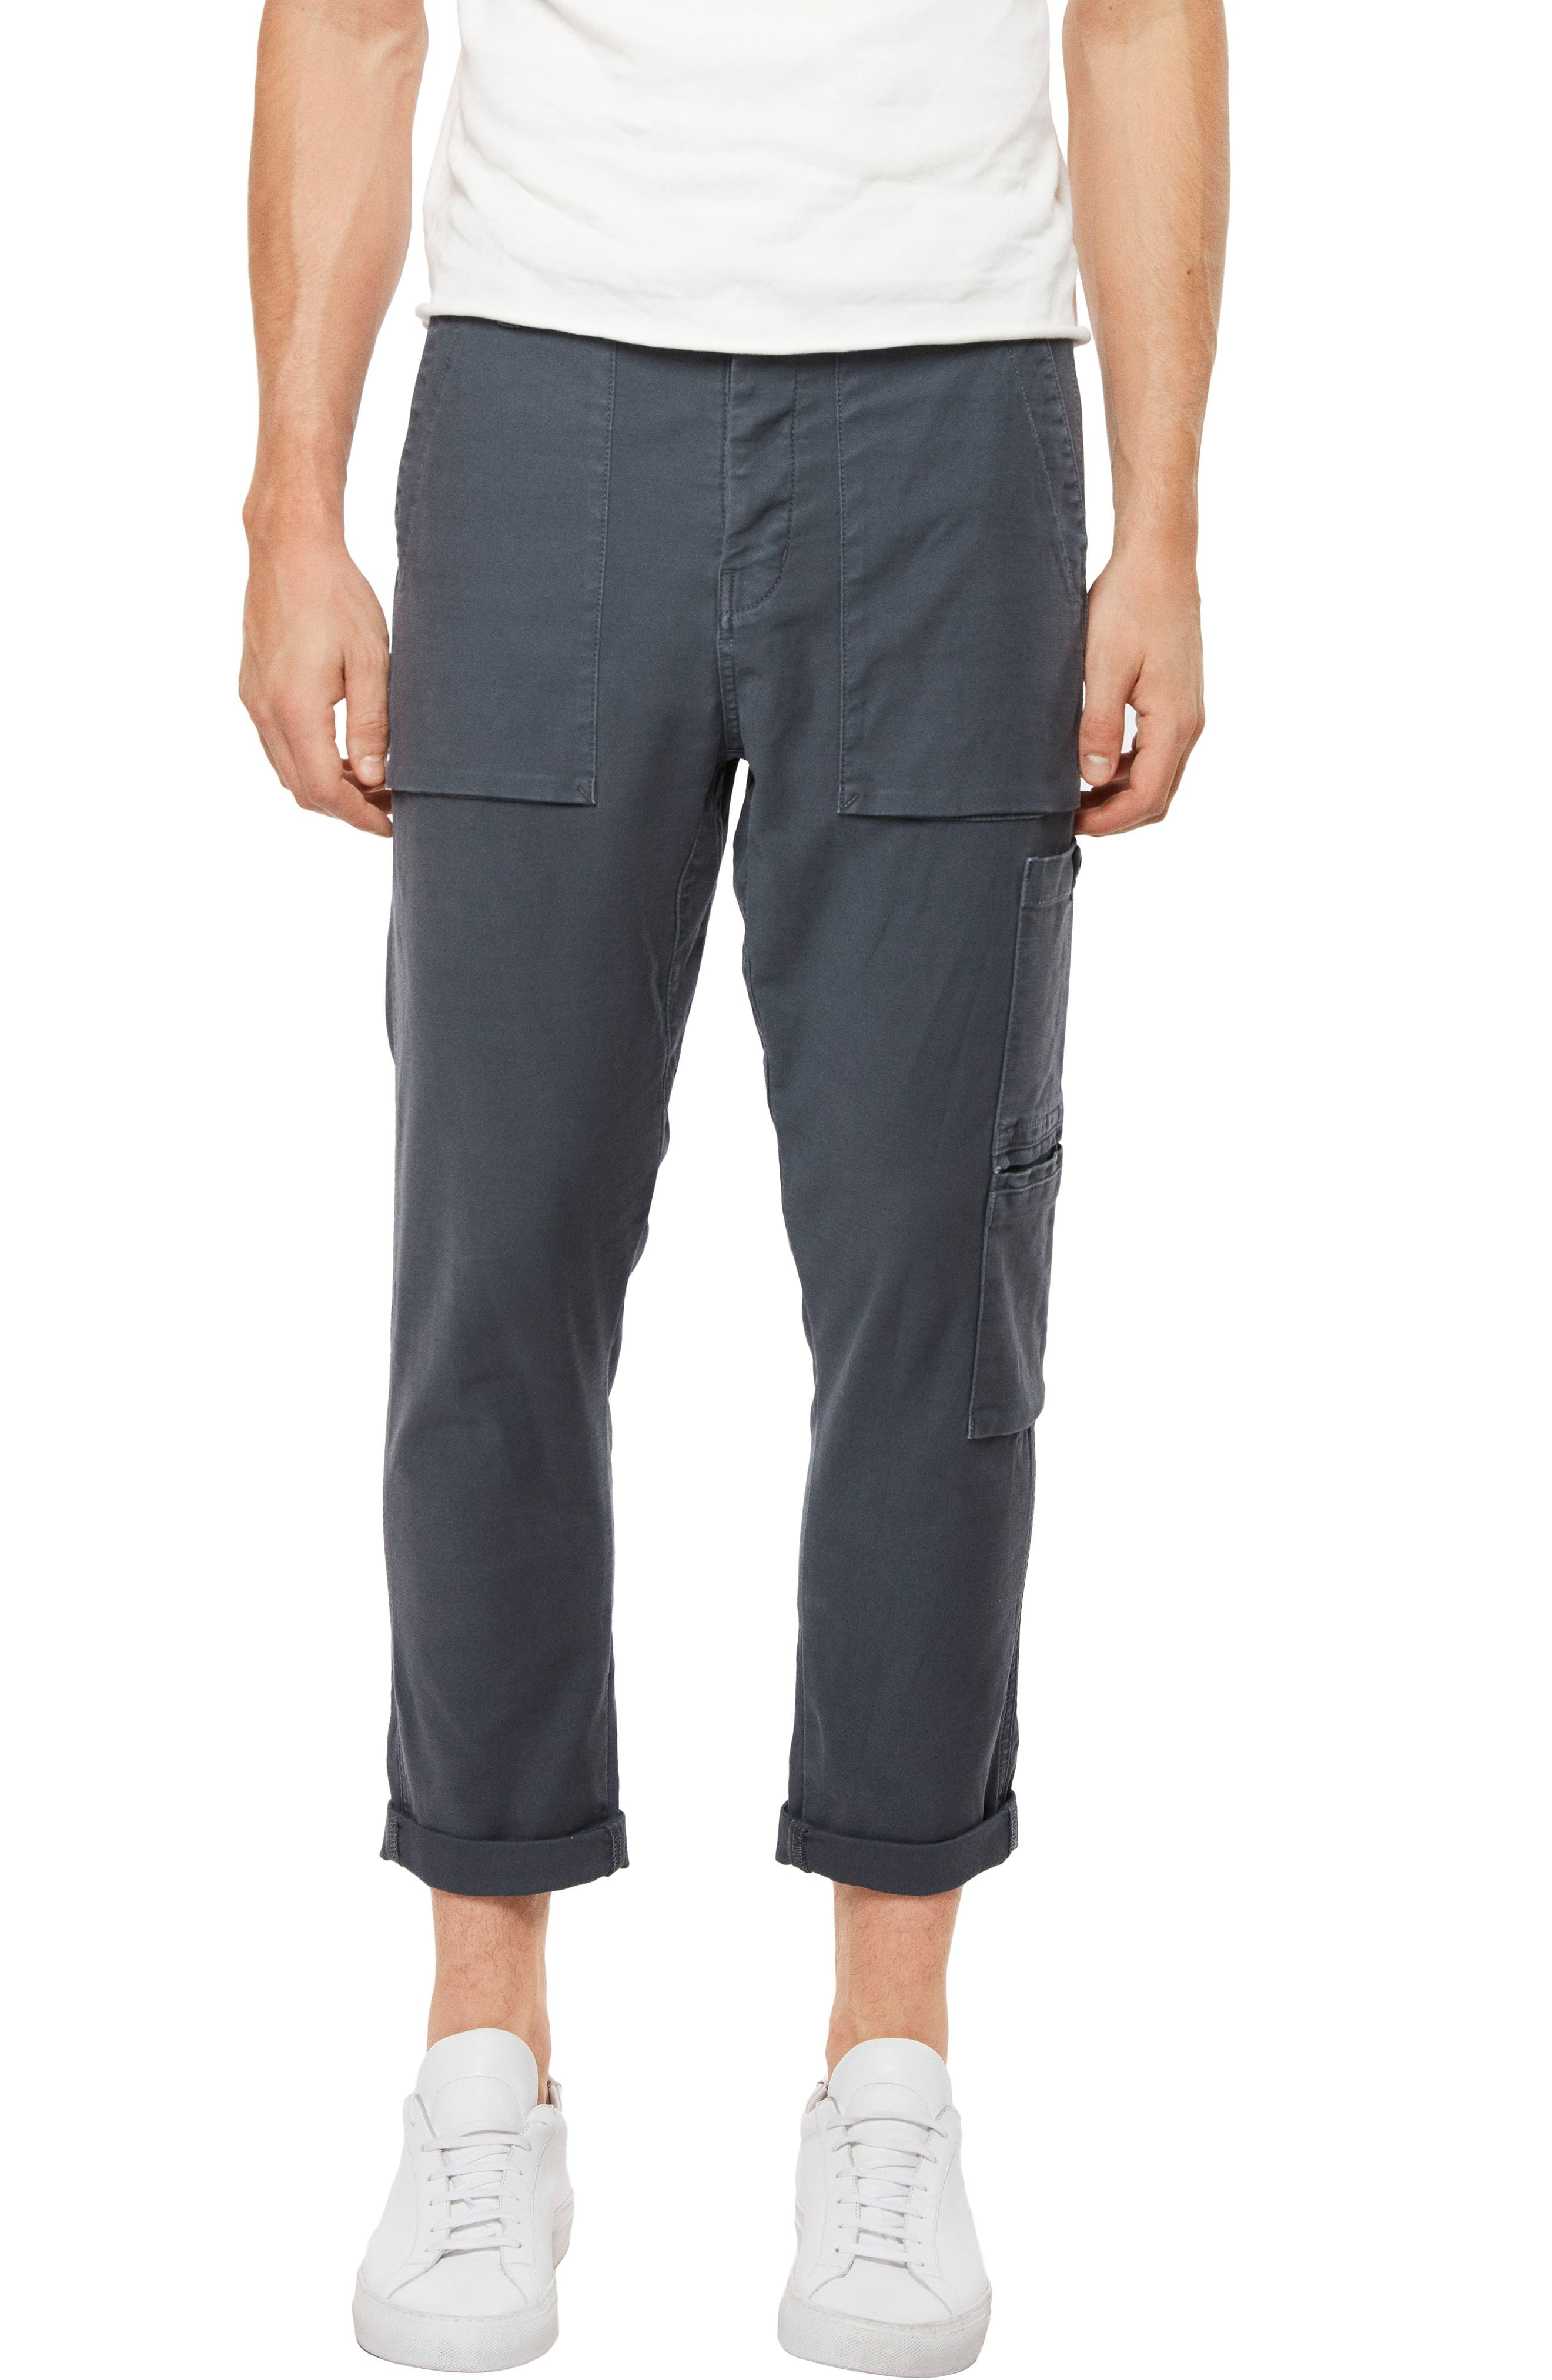 Koeficient Relaxed Fit Cargo Crop Pants,                         Main,                         color, 400